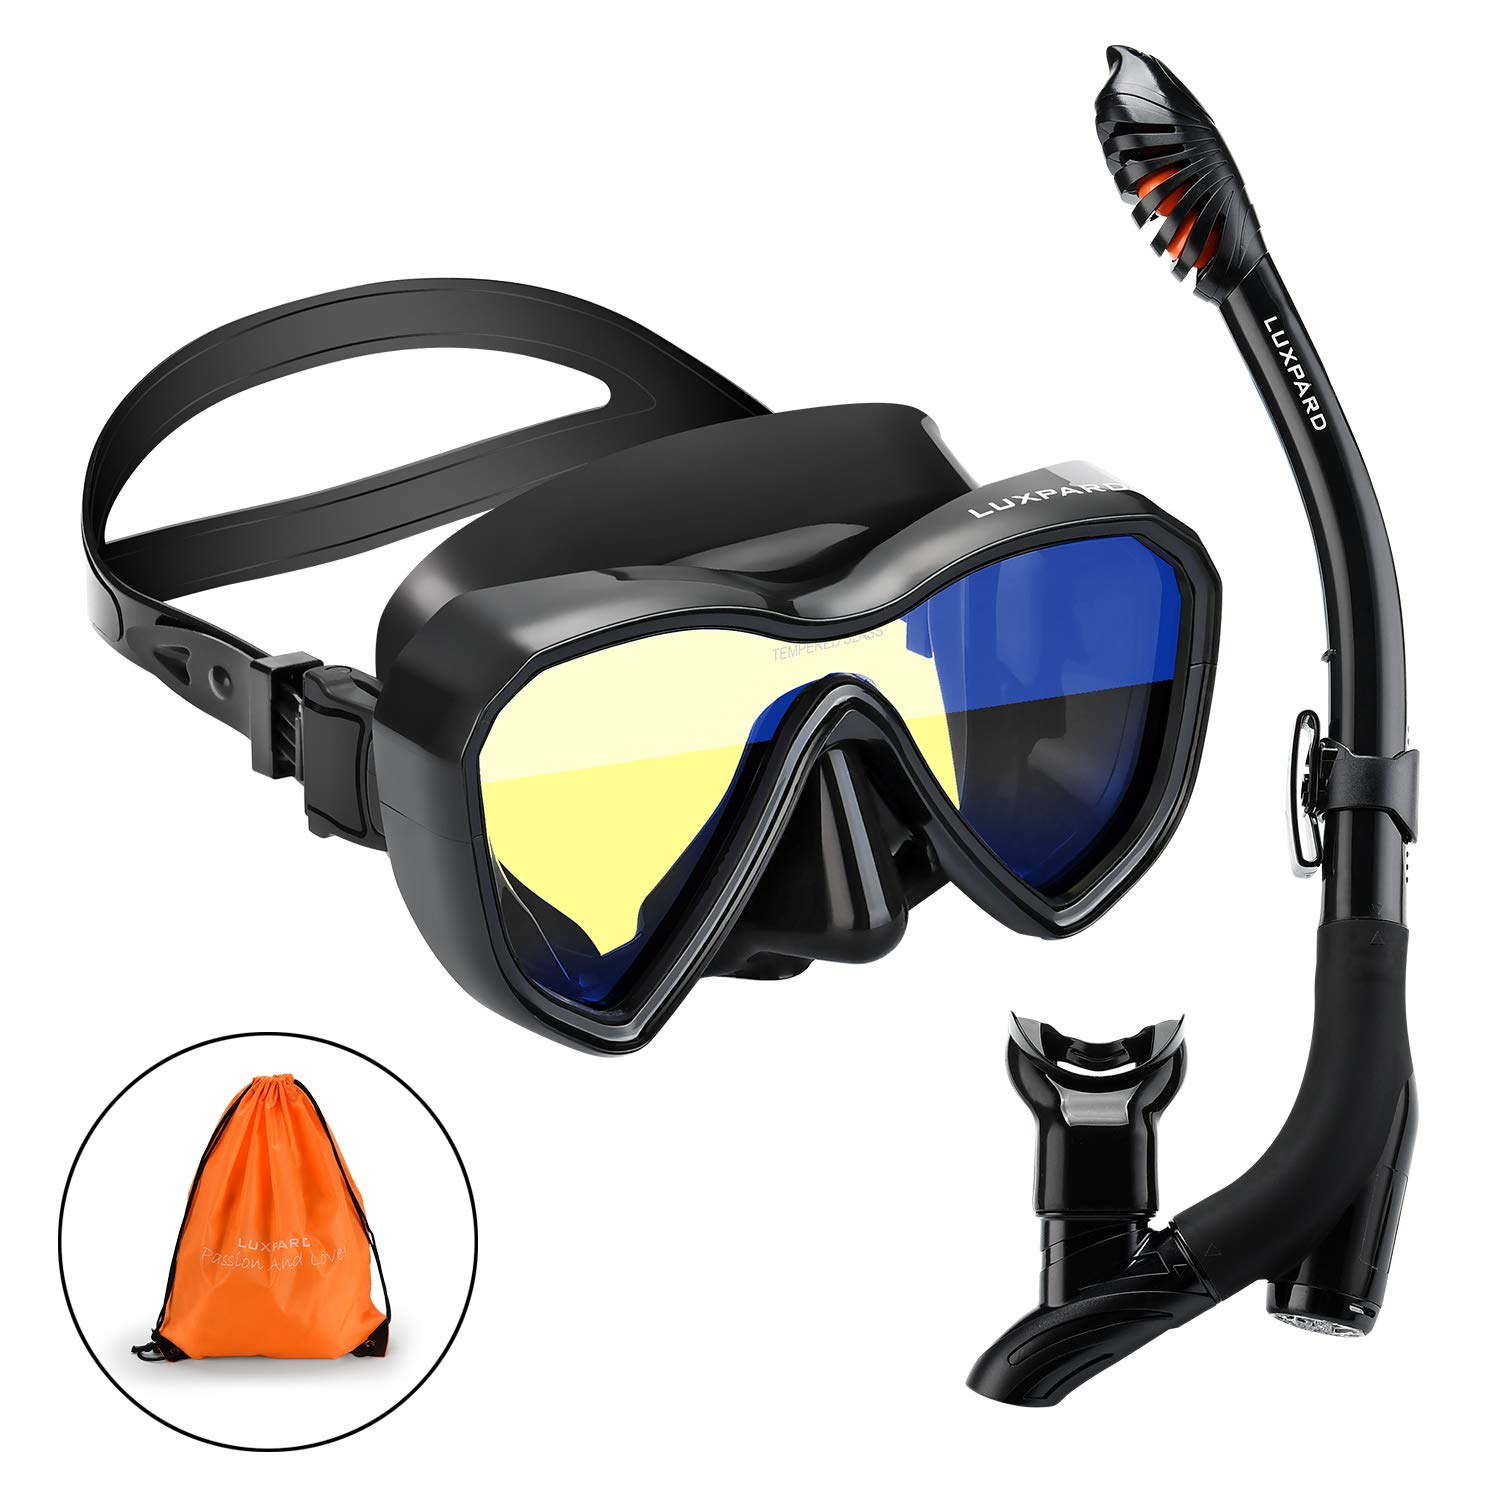 LUXPARD Snorkel Set, Anti-Fog Panoramic View Snorkel Mask and Anti-Leak Dry Snorkel Tube, Snorkeling Gear for Adult and Youth, Snorkel Kit Bag Included (Black) by LUXPARD